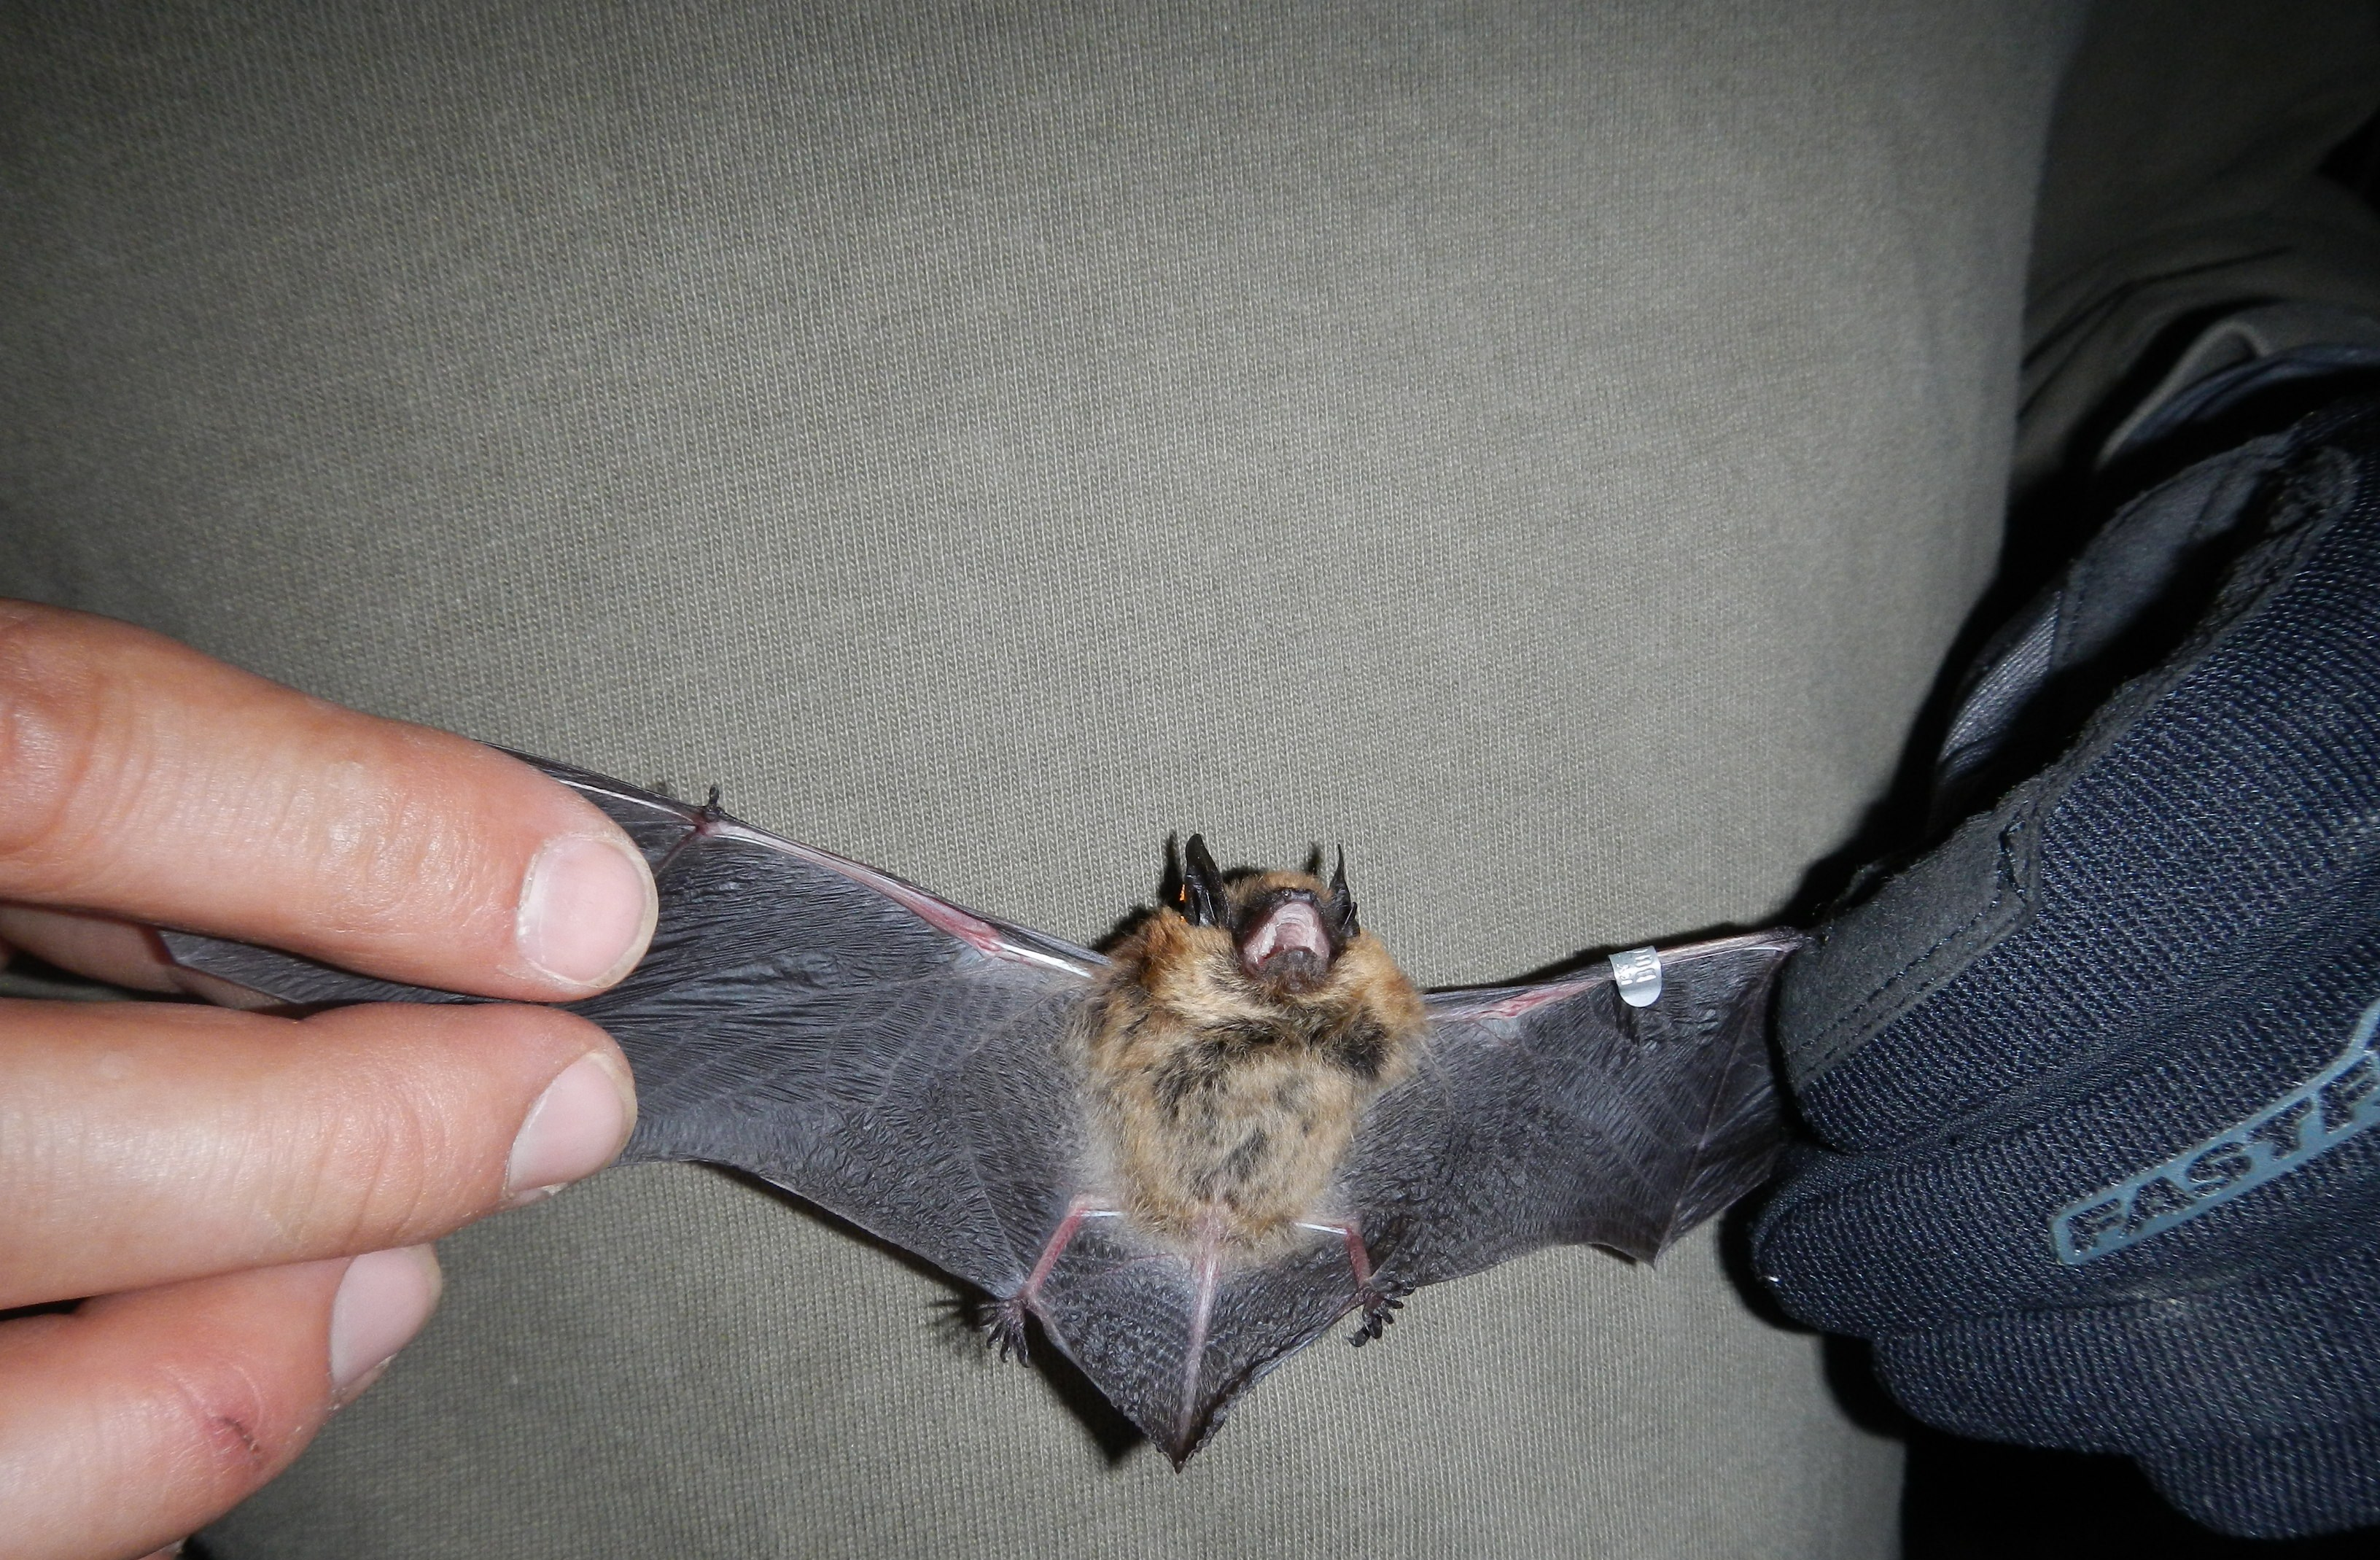 Indiana Bat Surveys Endangered Species